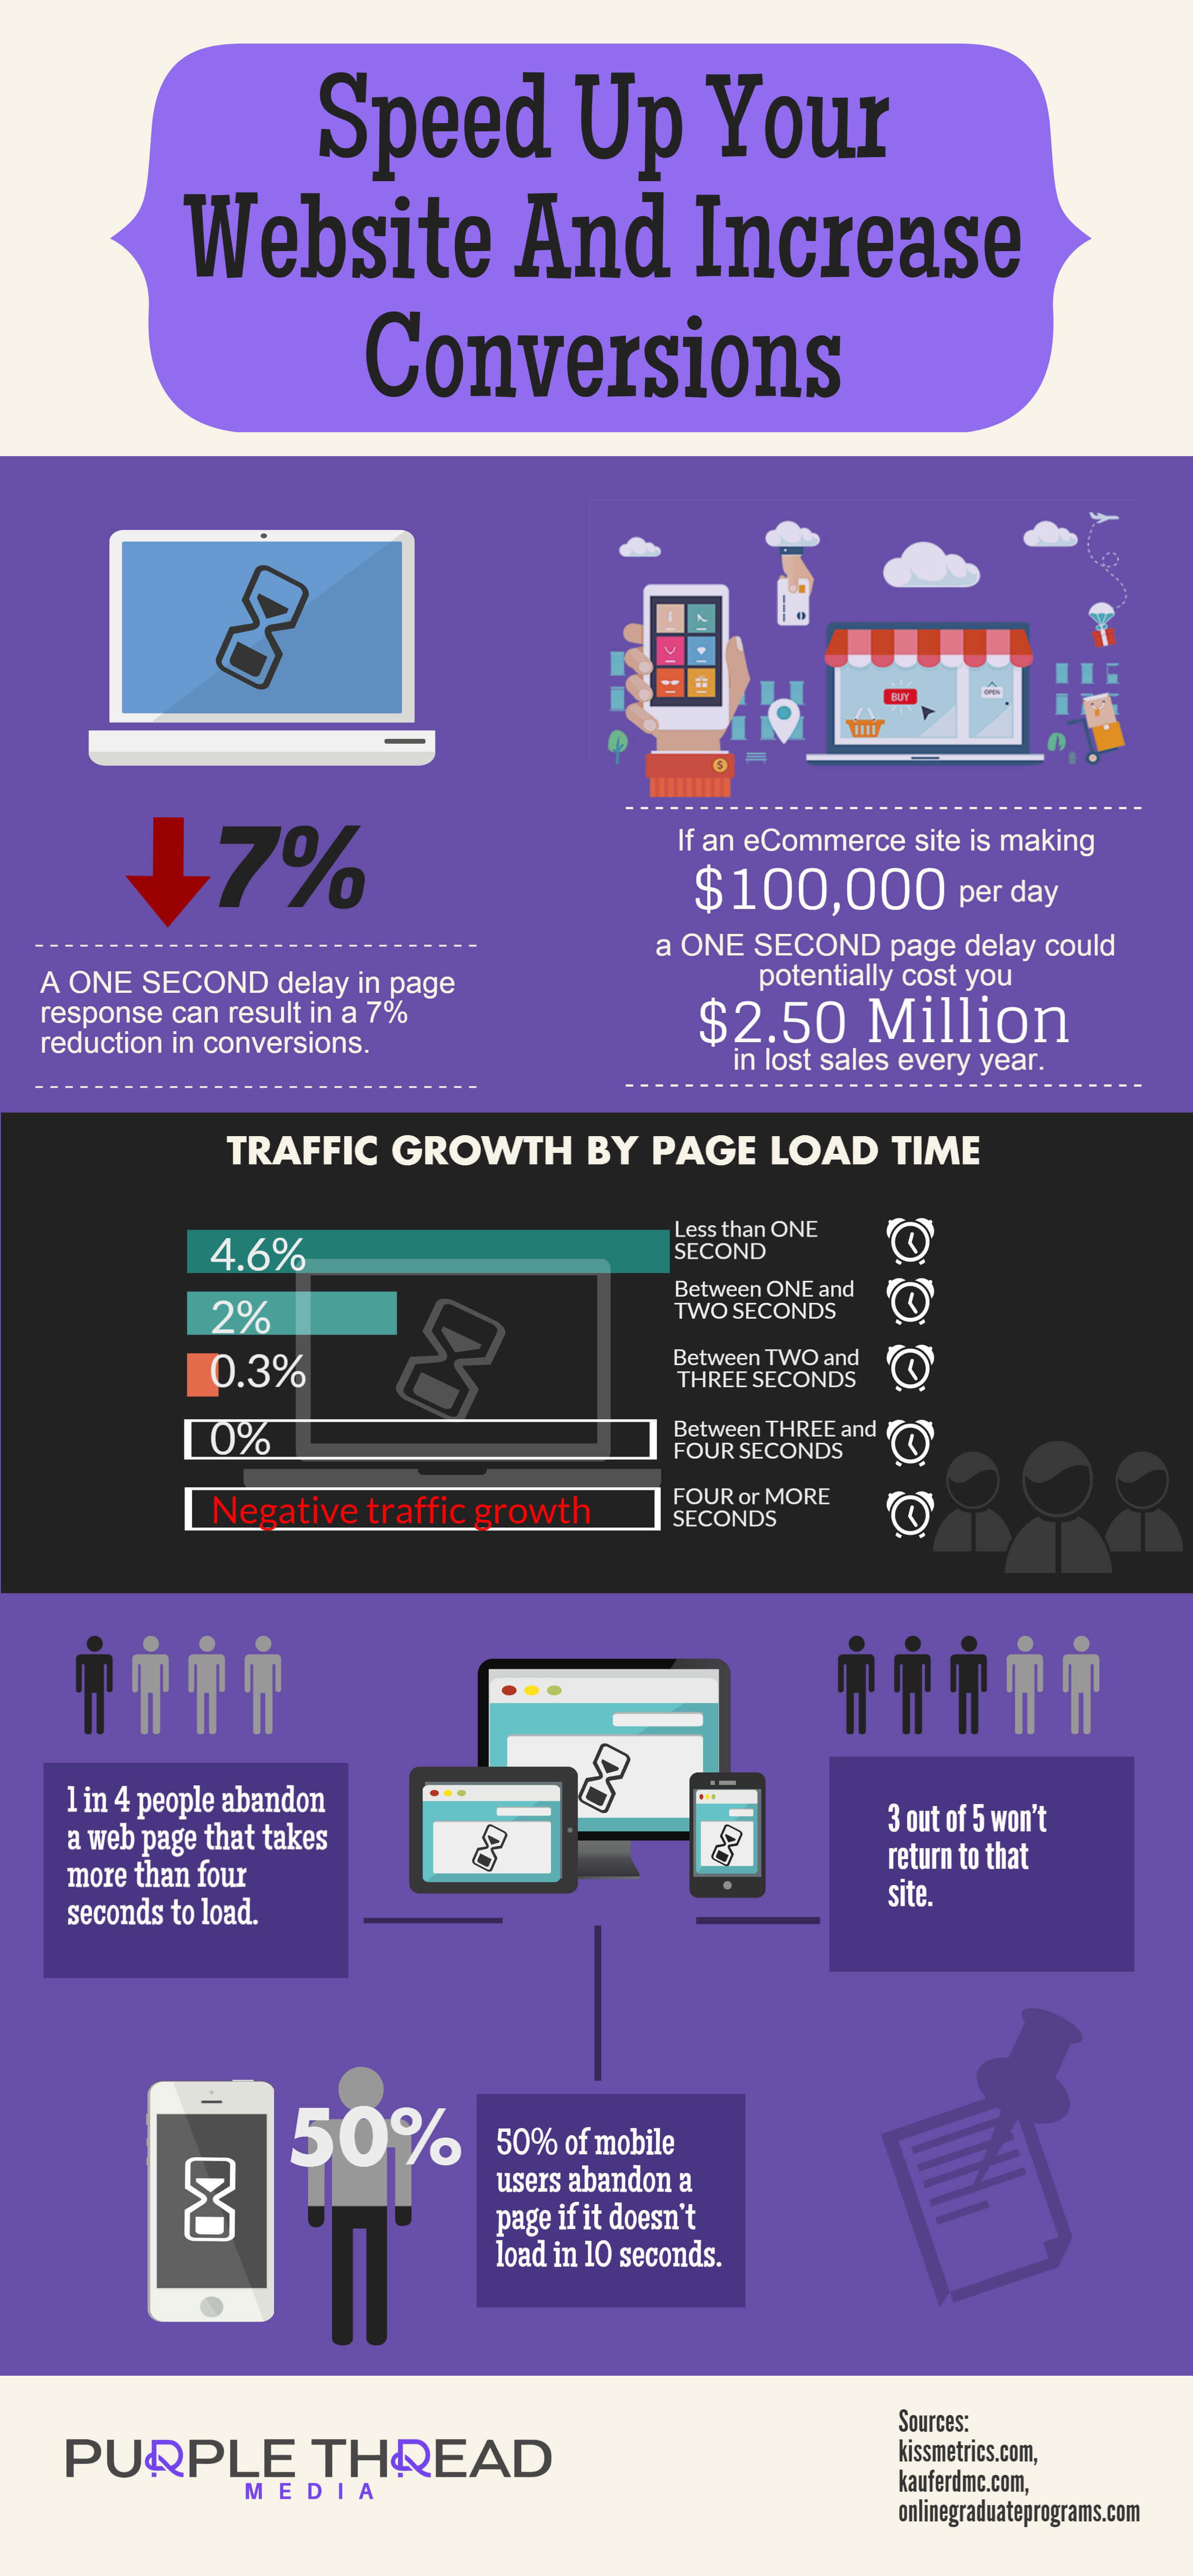 Speed Up Website And Increase Conversions - Purple Thread - Recommended hosting to speed up your website and increase conversions